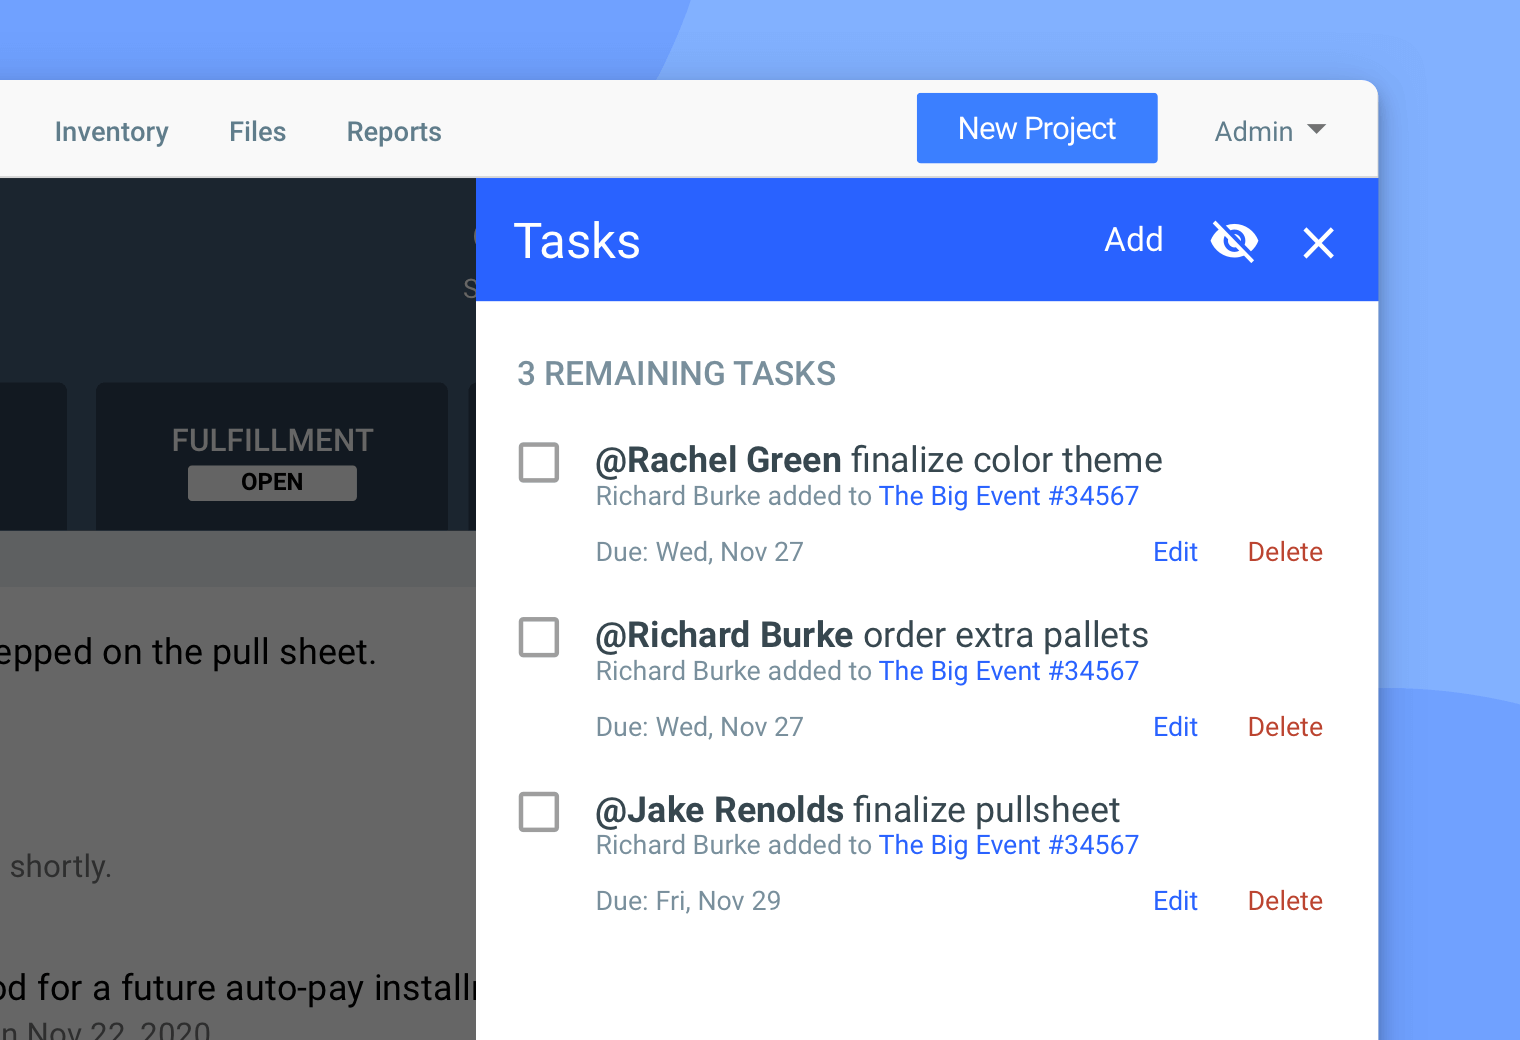 Task management in Goodshuffle Pro, event rental management software